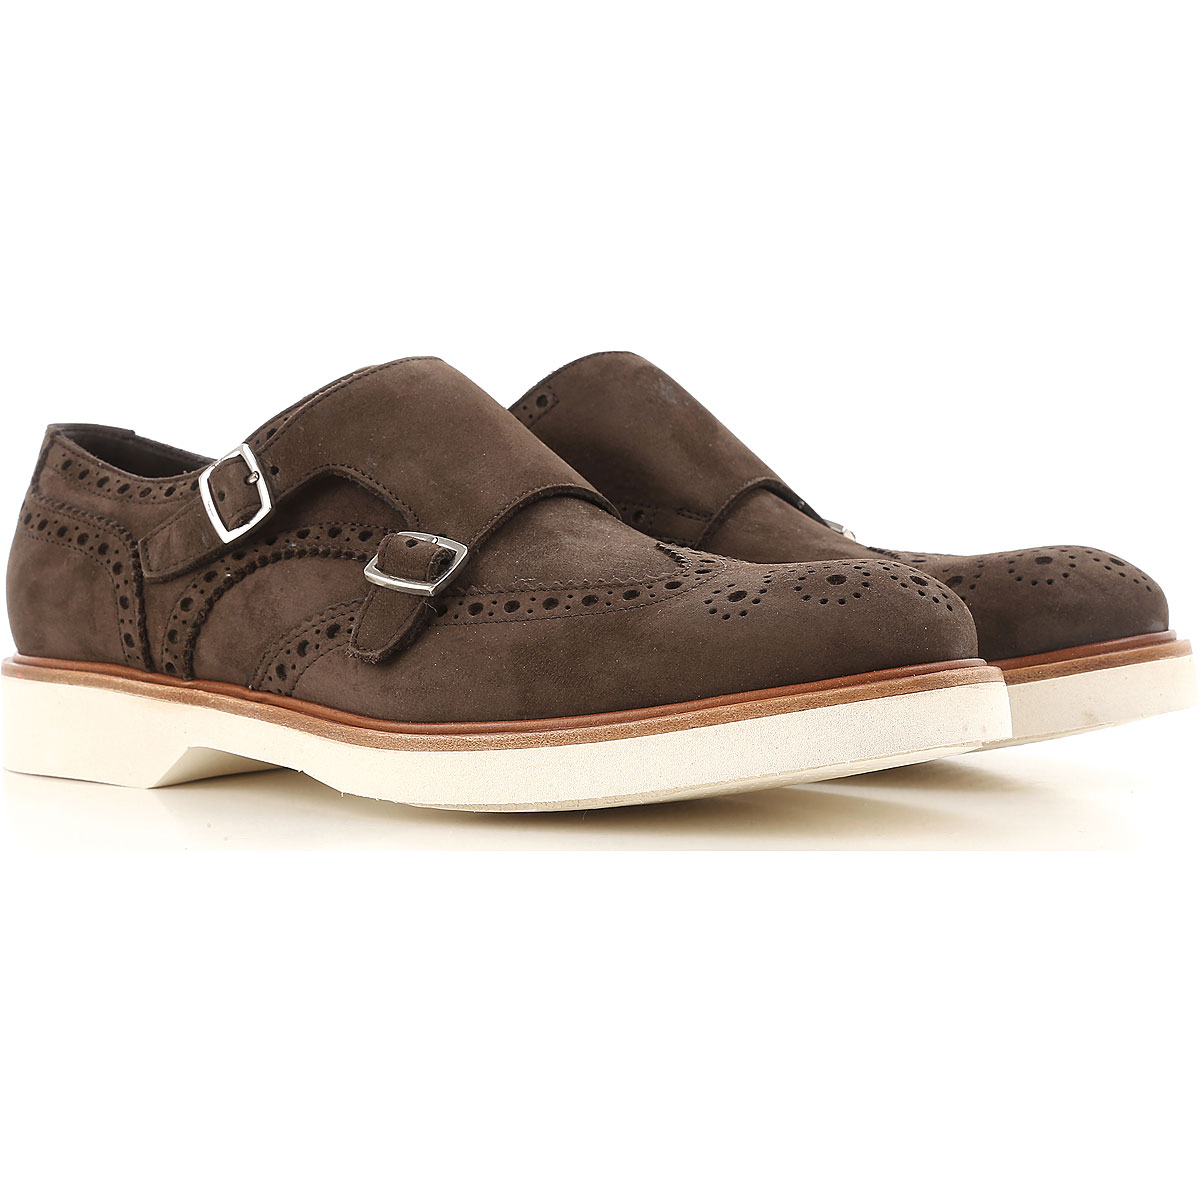 Salvatore Ferragamo Monk Strap Shoes for Men On Sale in Outlet, Dark Brown, Suede leather, 2019, 7 7.5 8